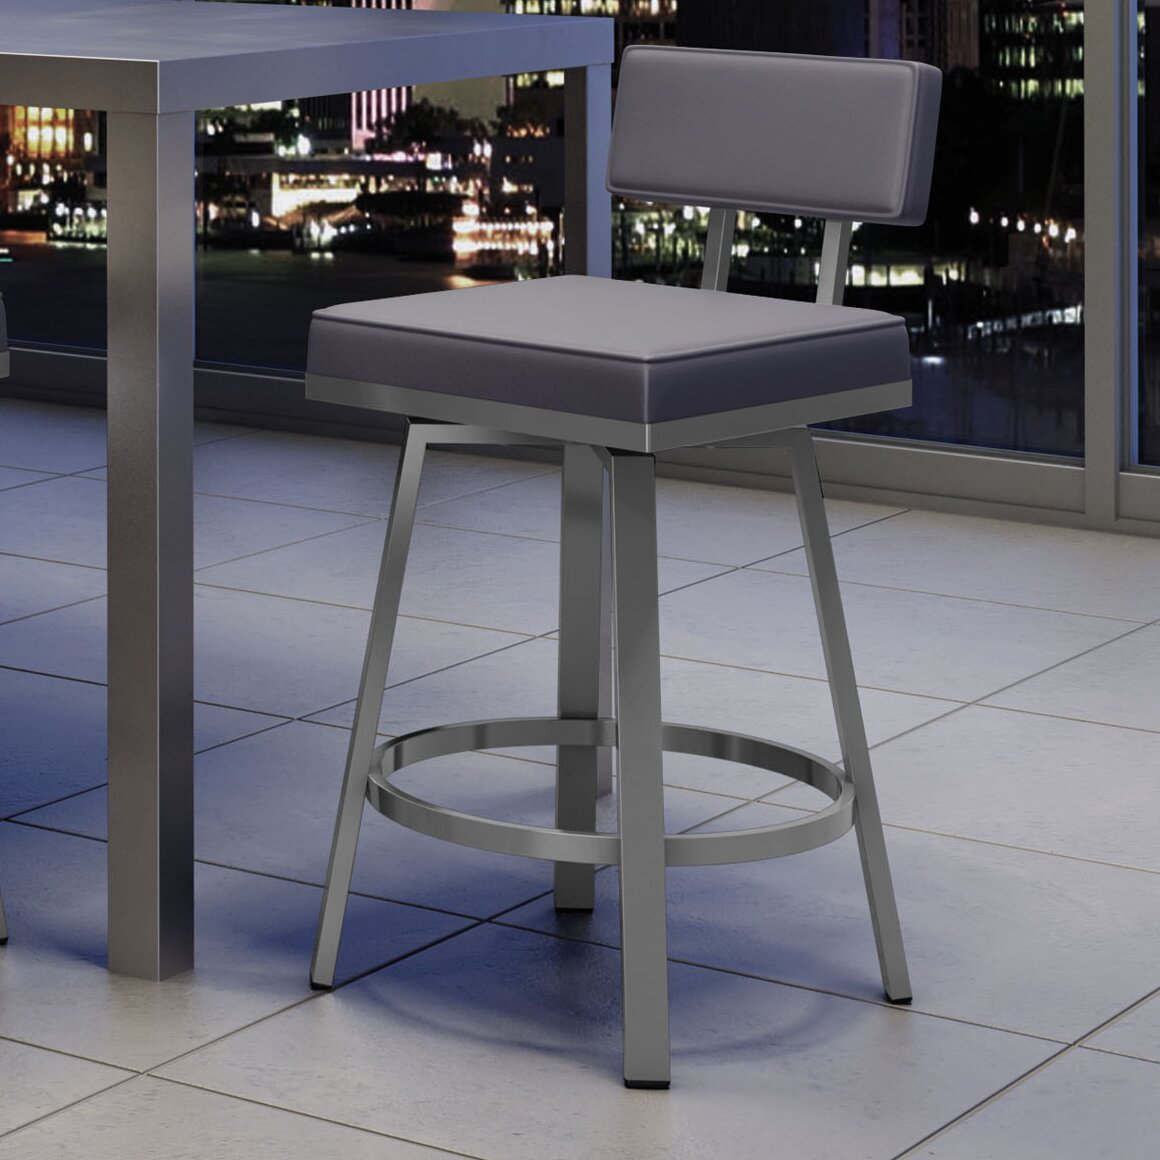 New York Style 26quot Swivel Bar Stool amp Reviews AllModern : NewYorkStyle2622SwivelBarStool from www.allmodern.com size 1160 x 1160 jpeg 148kB